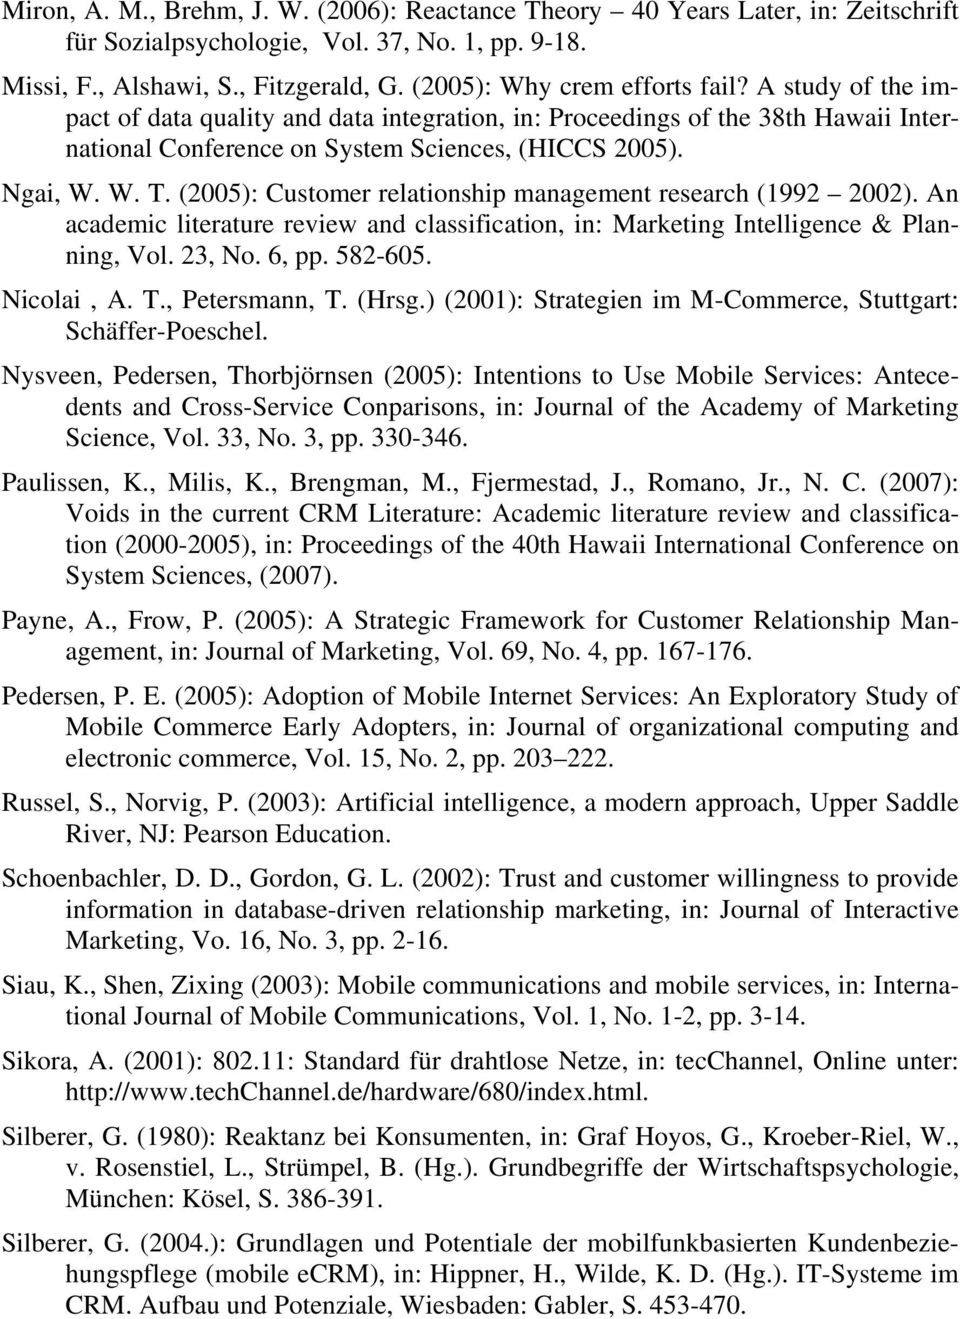 (2005): Customer relationship management research (1992 2002). An academic literature review and classification, in: Marketing Intelligence & Planning, Vol. 23, No. 6, pp. 582-605. Nicolai, A. T.